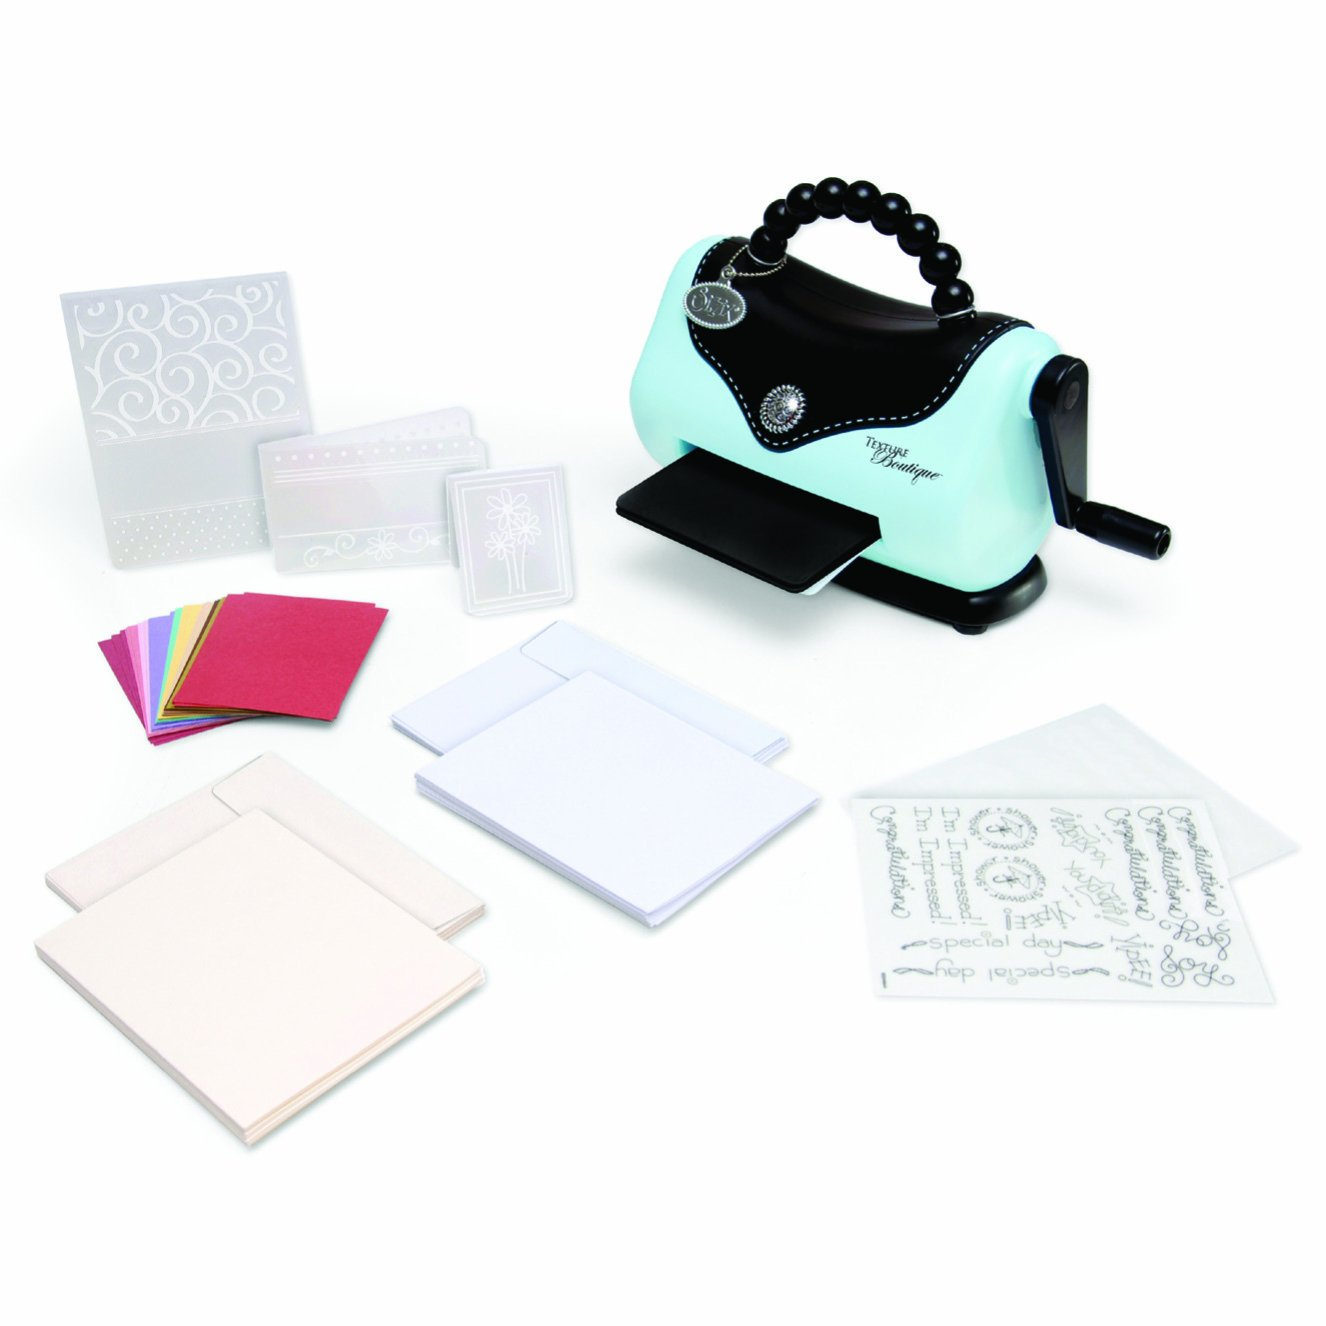 Sizzix 656280 Texture Boutique Embossing Machine Beginner's Kit